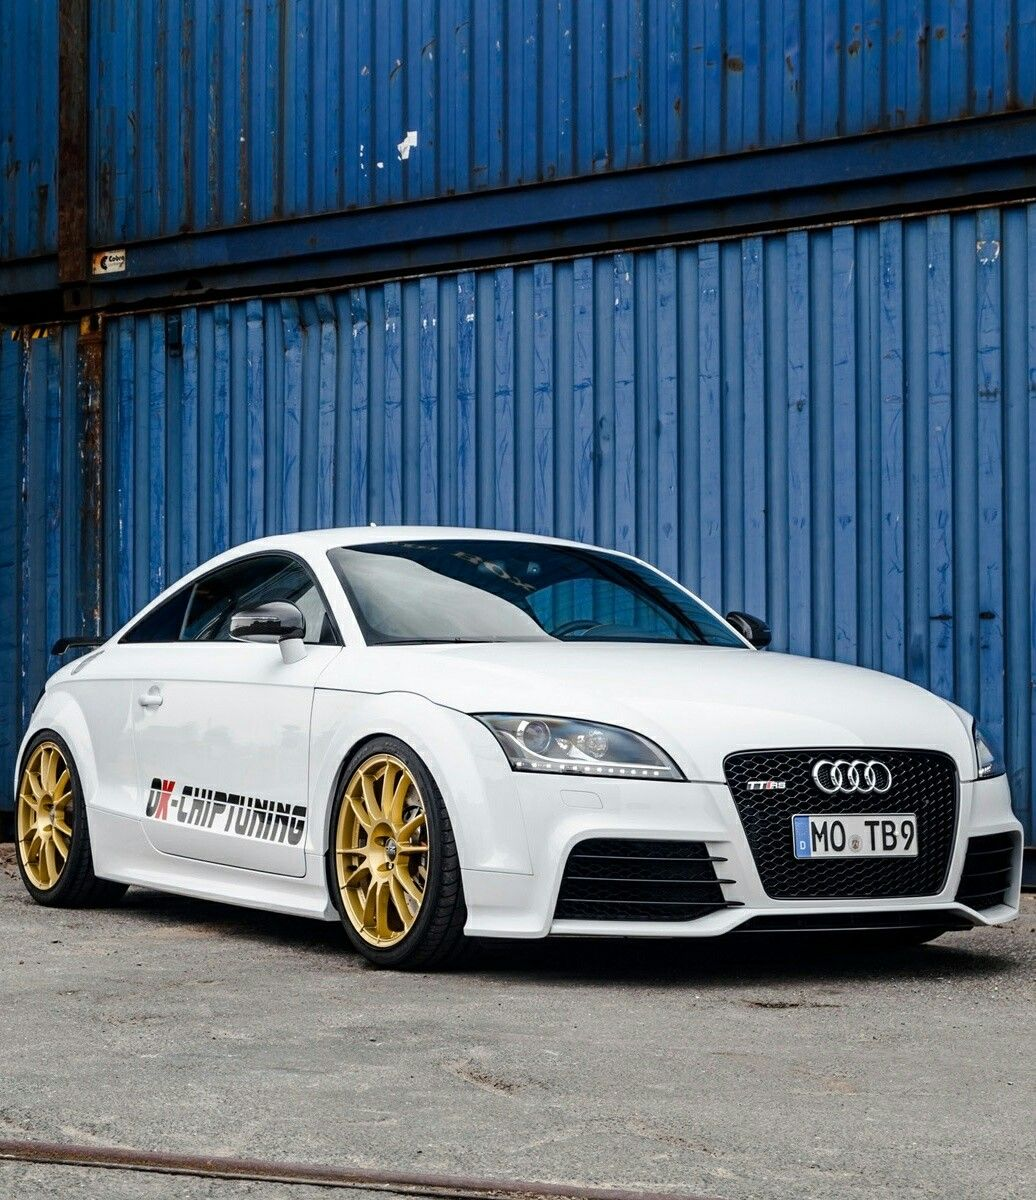 2014 OK-Chiptuning Audi TT RS Plus Have Tuned The Inline 5